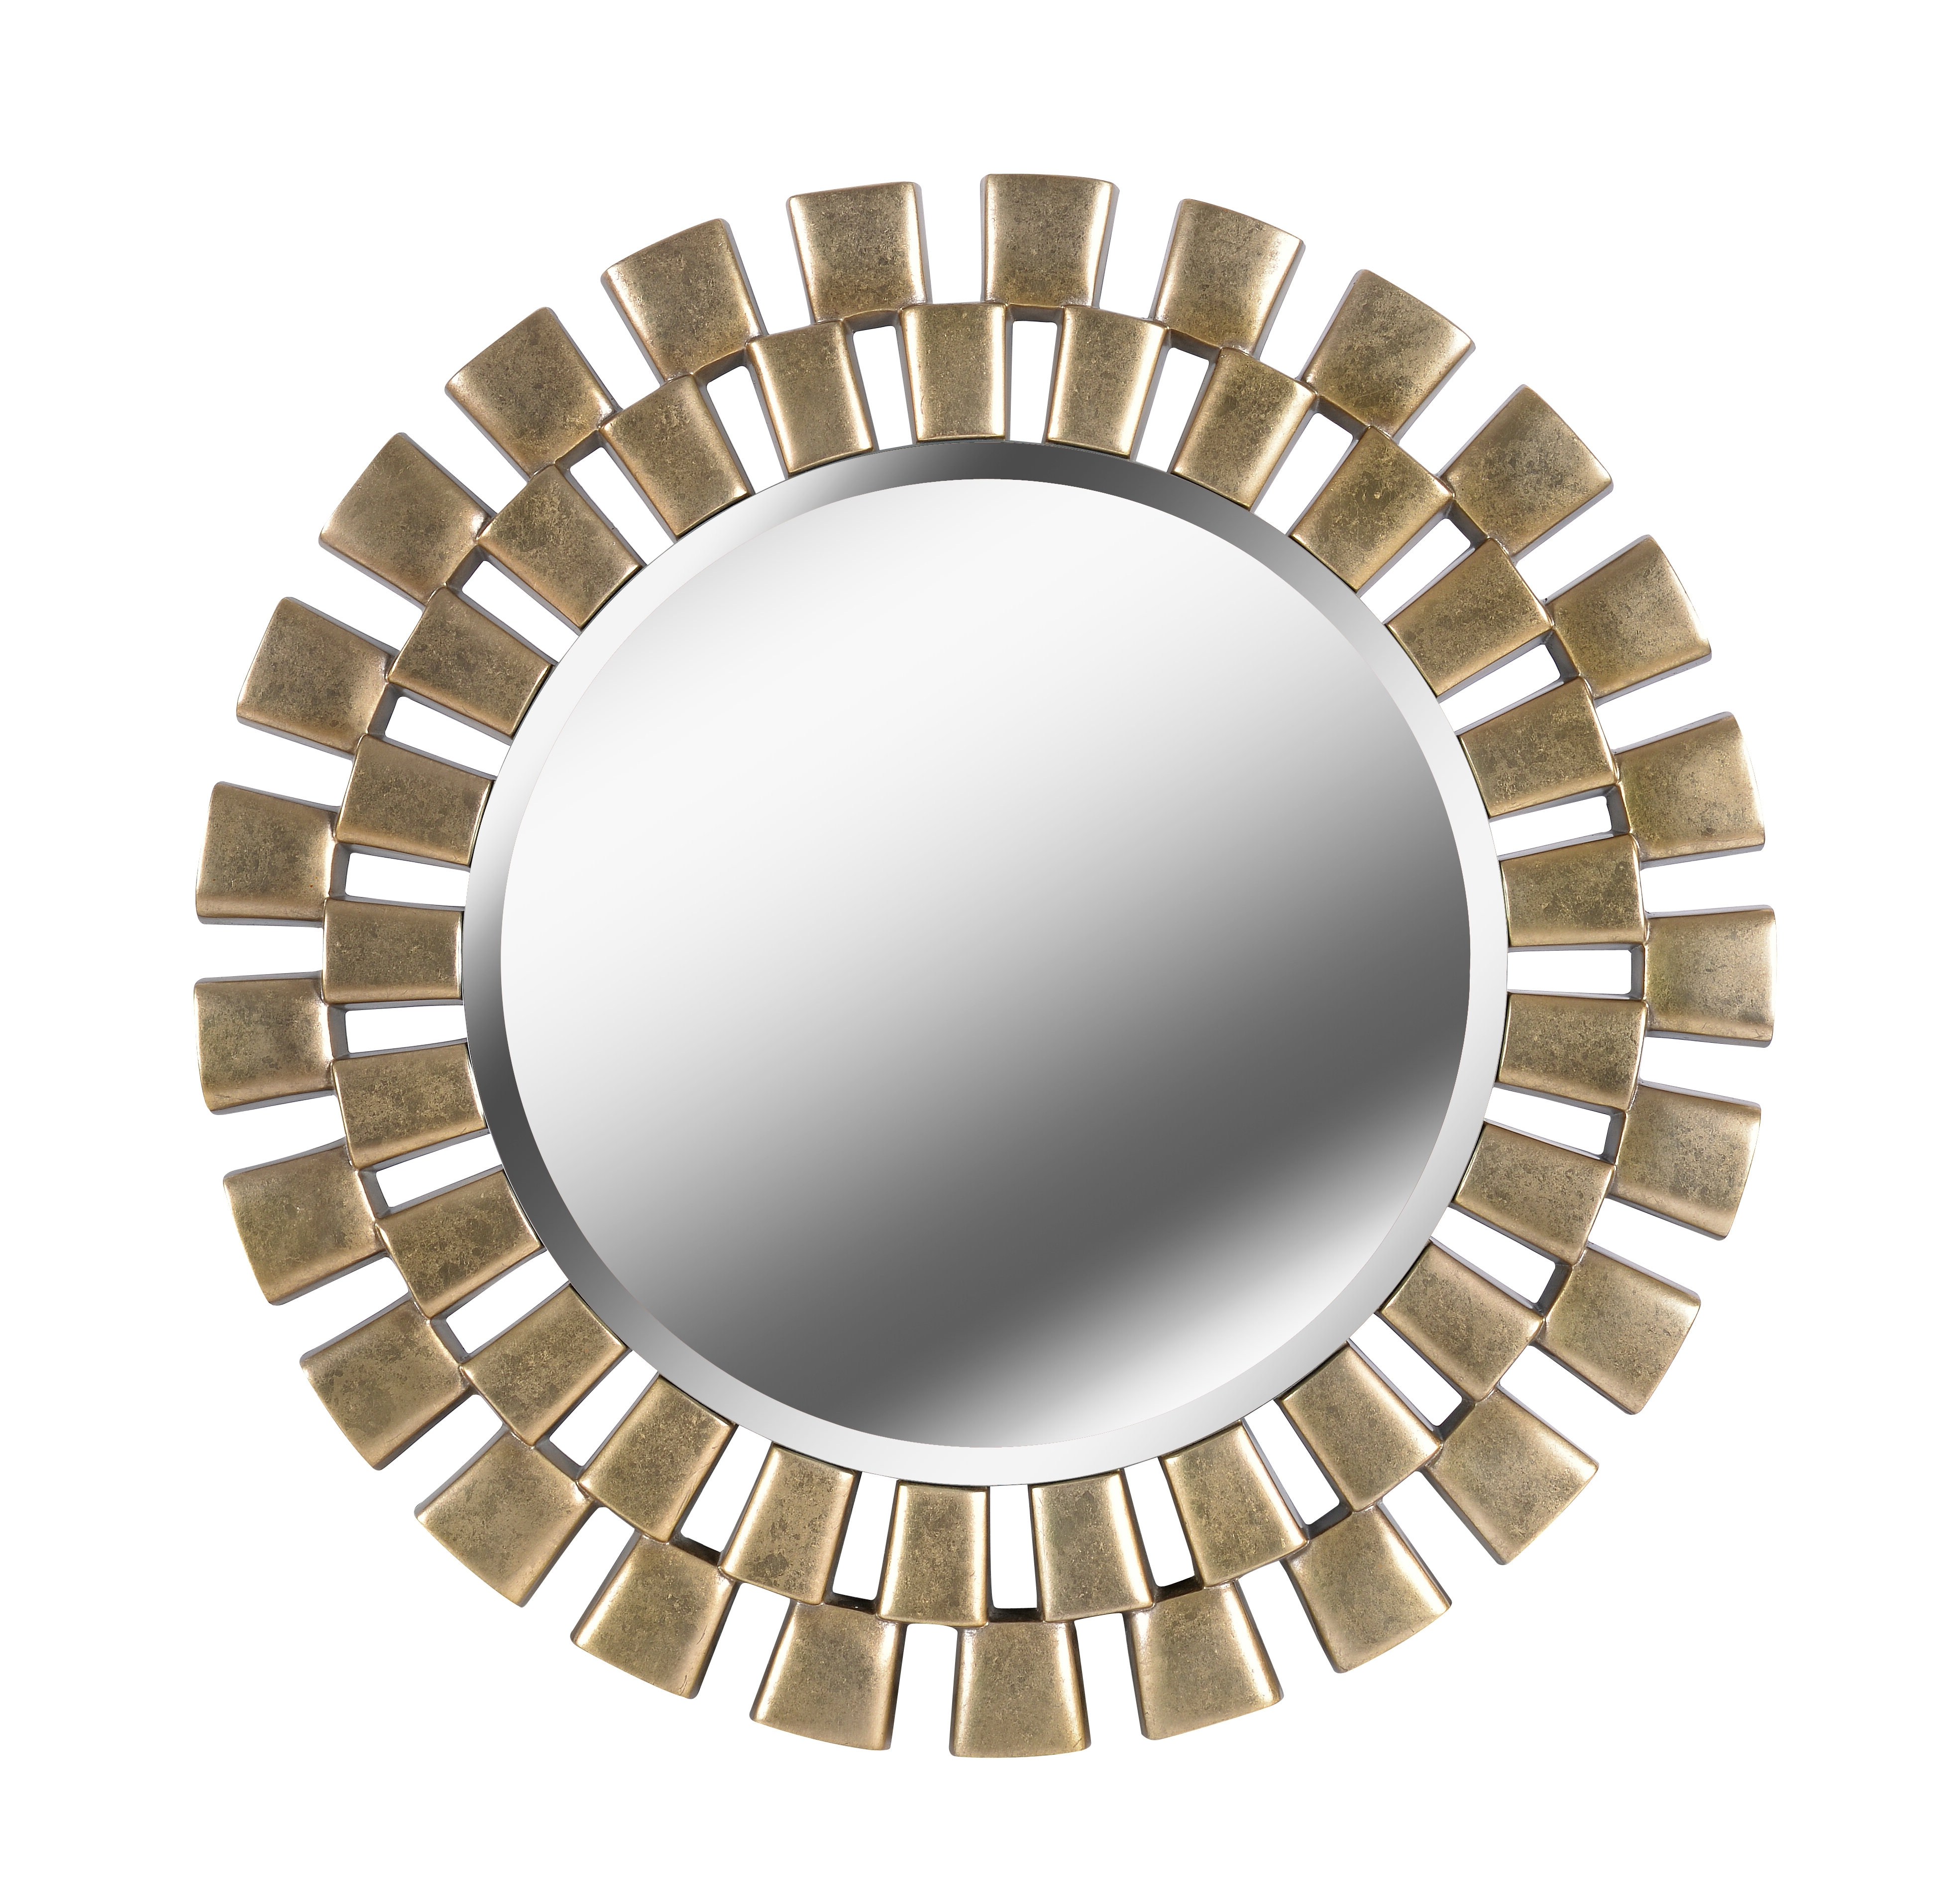 Glam Beveled Accent Mirrors With Best And Newest Glam Beveled Accent Mirror (View 2 of 20)